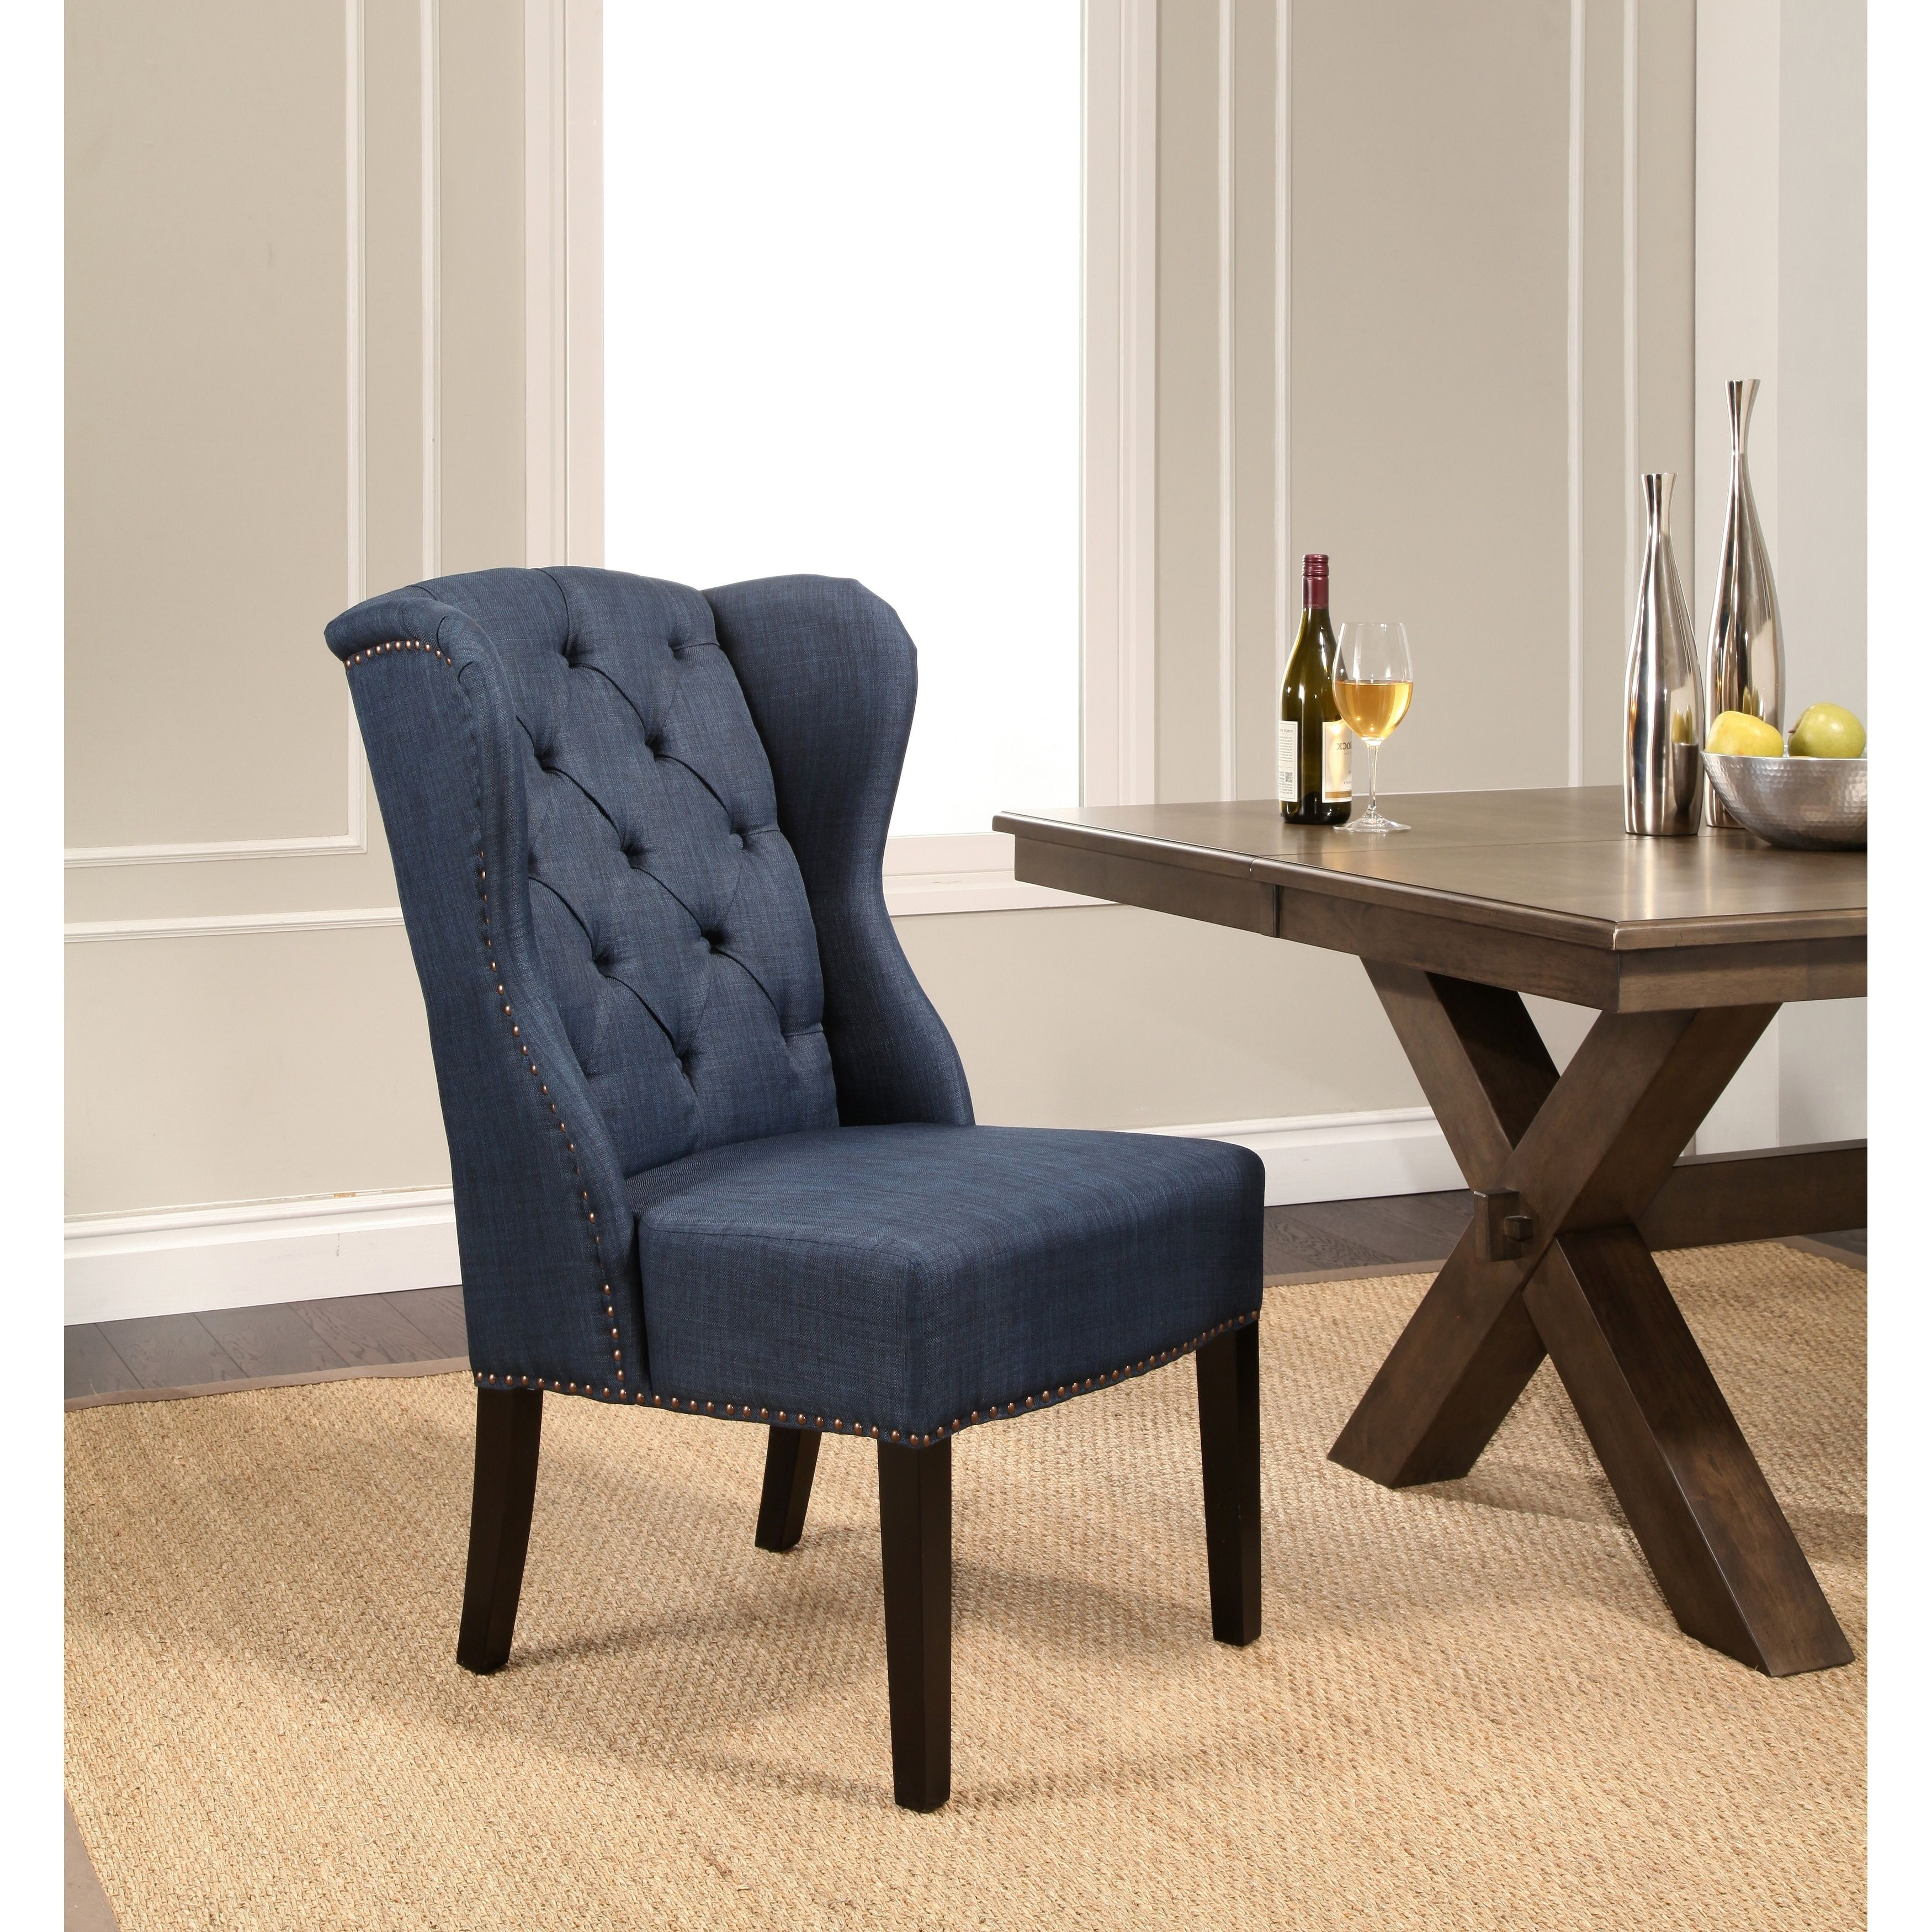 Abbyson Sierra Tufted Fabric Wingback Dining Chair Grey Products